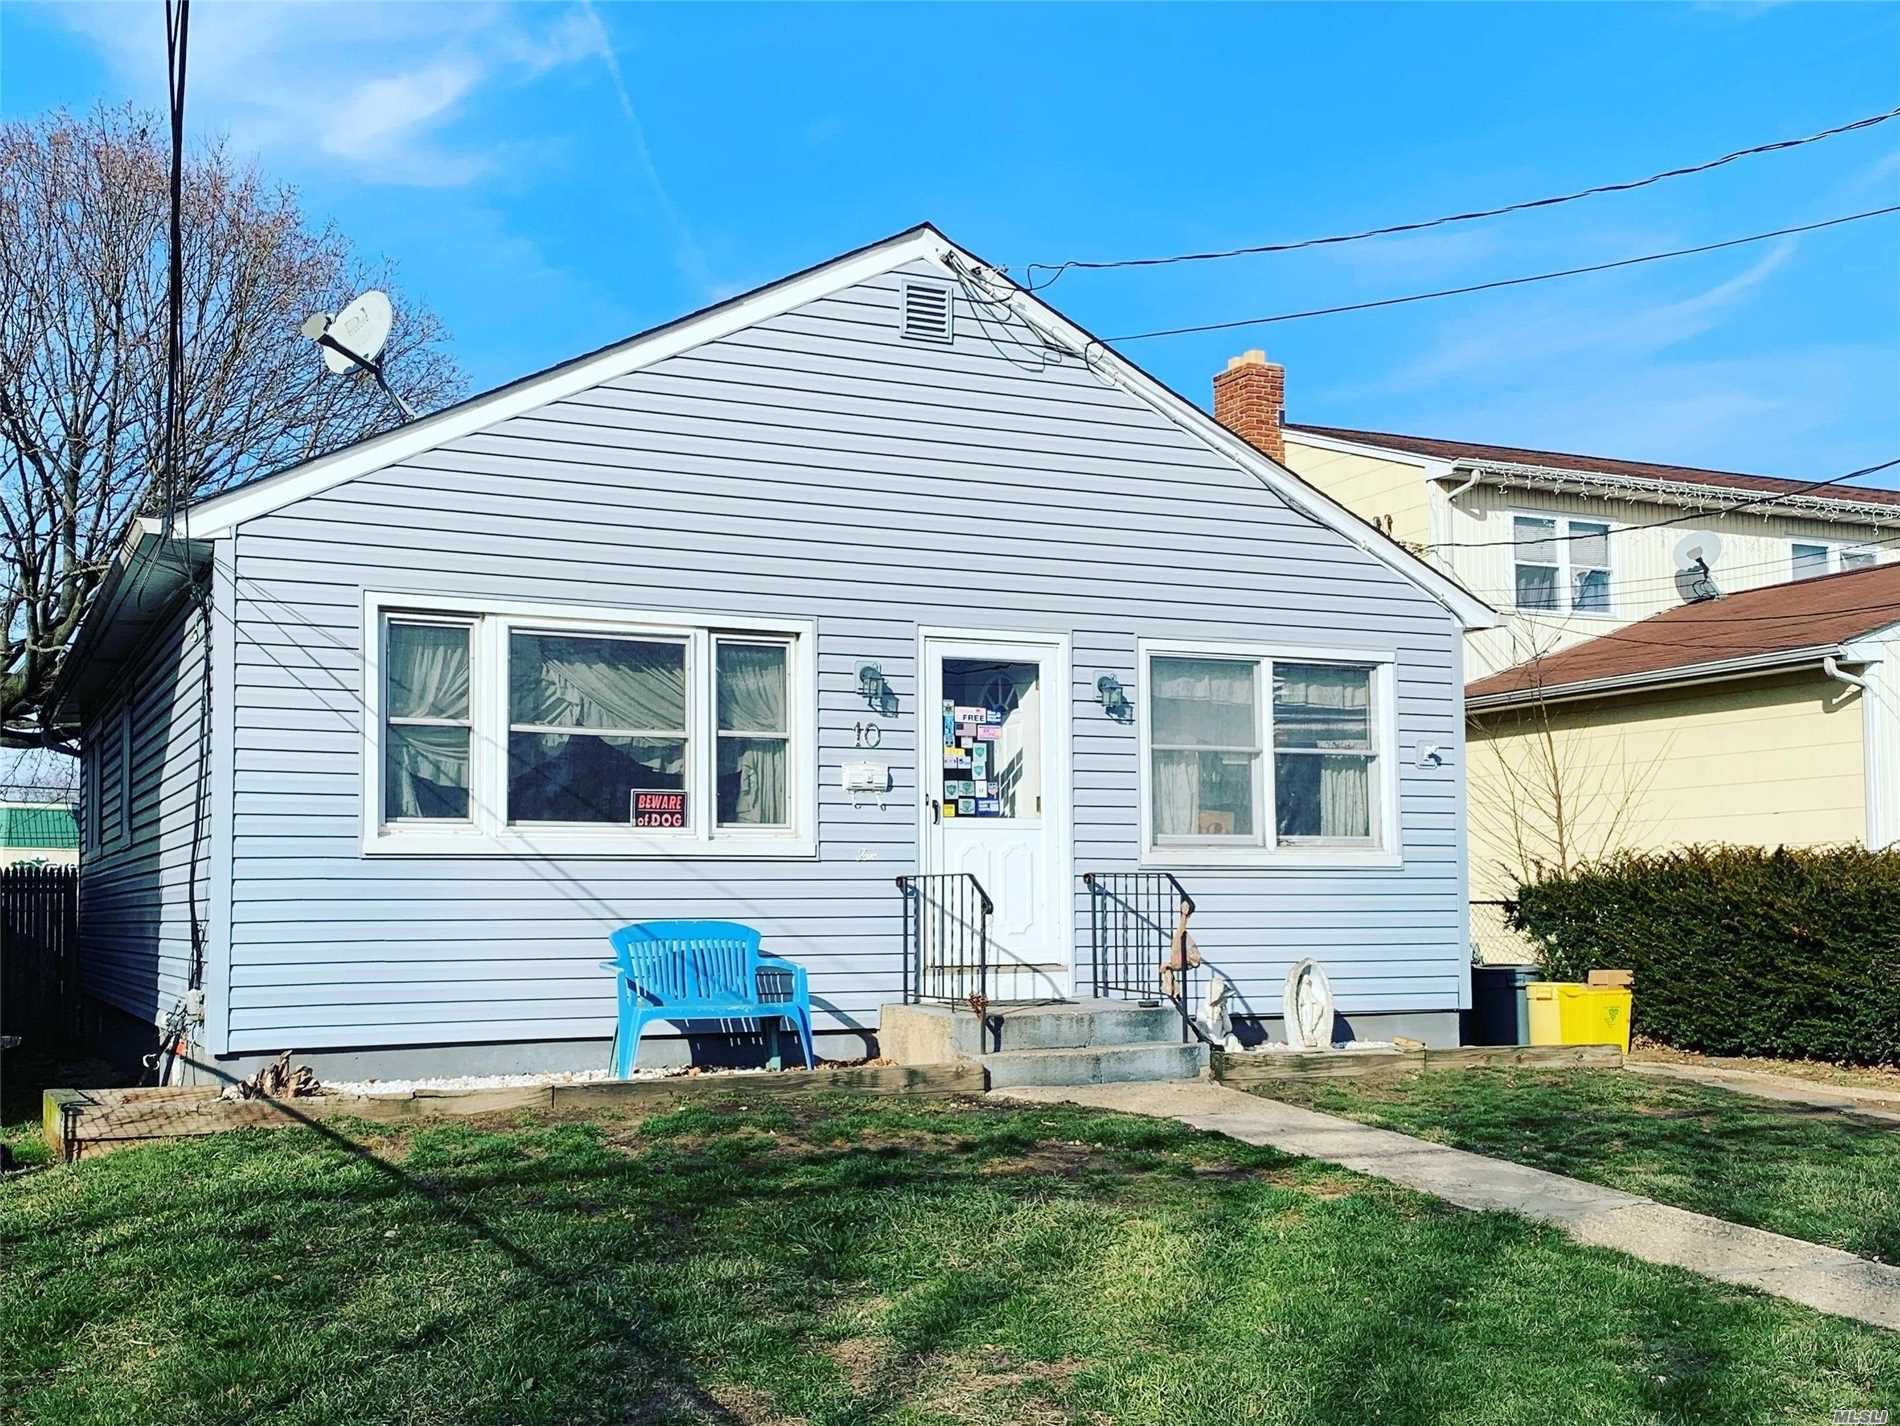 3 Bedroom, 1 Bath Ranch, With Full Finished Basement With Outside Entrance, Very Close Proximity To Hicksville Train Station, Bus Stops, Shopping, And Restaurants.